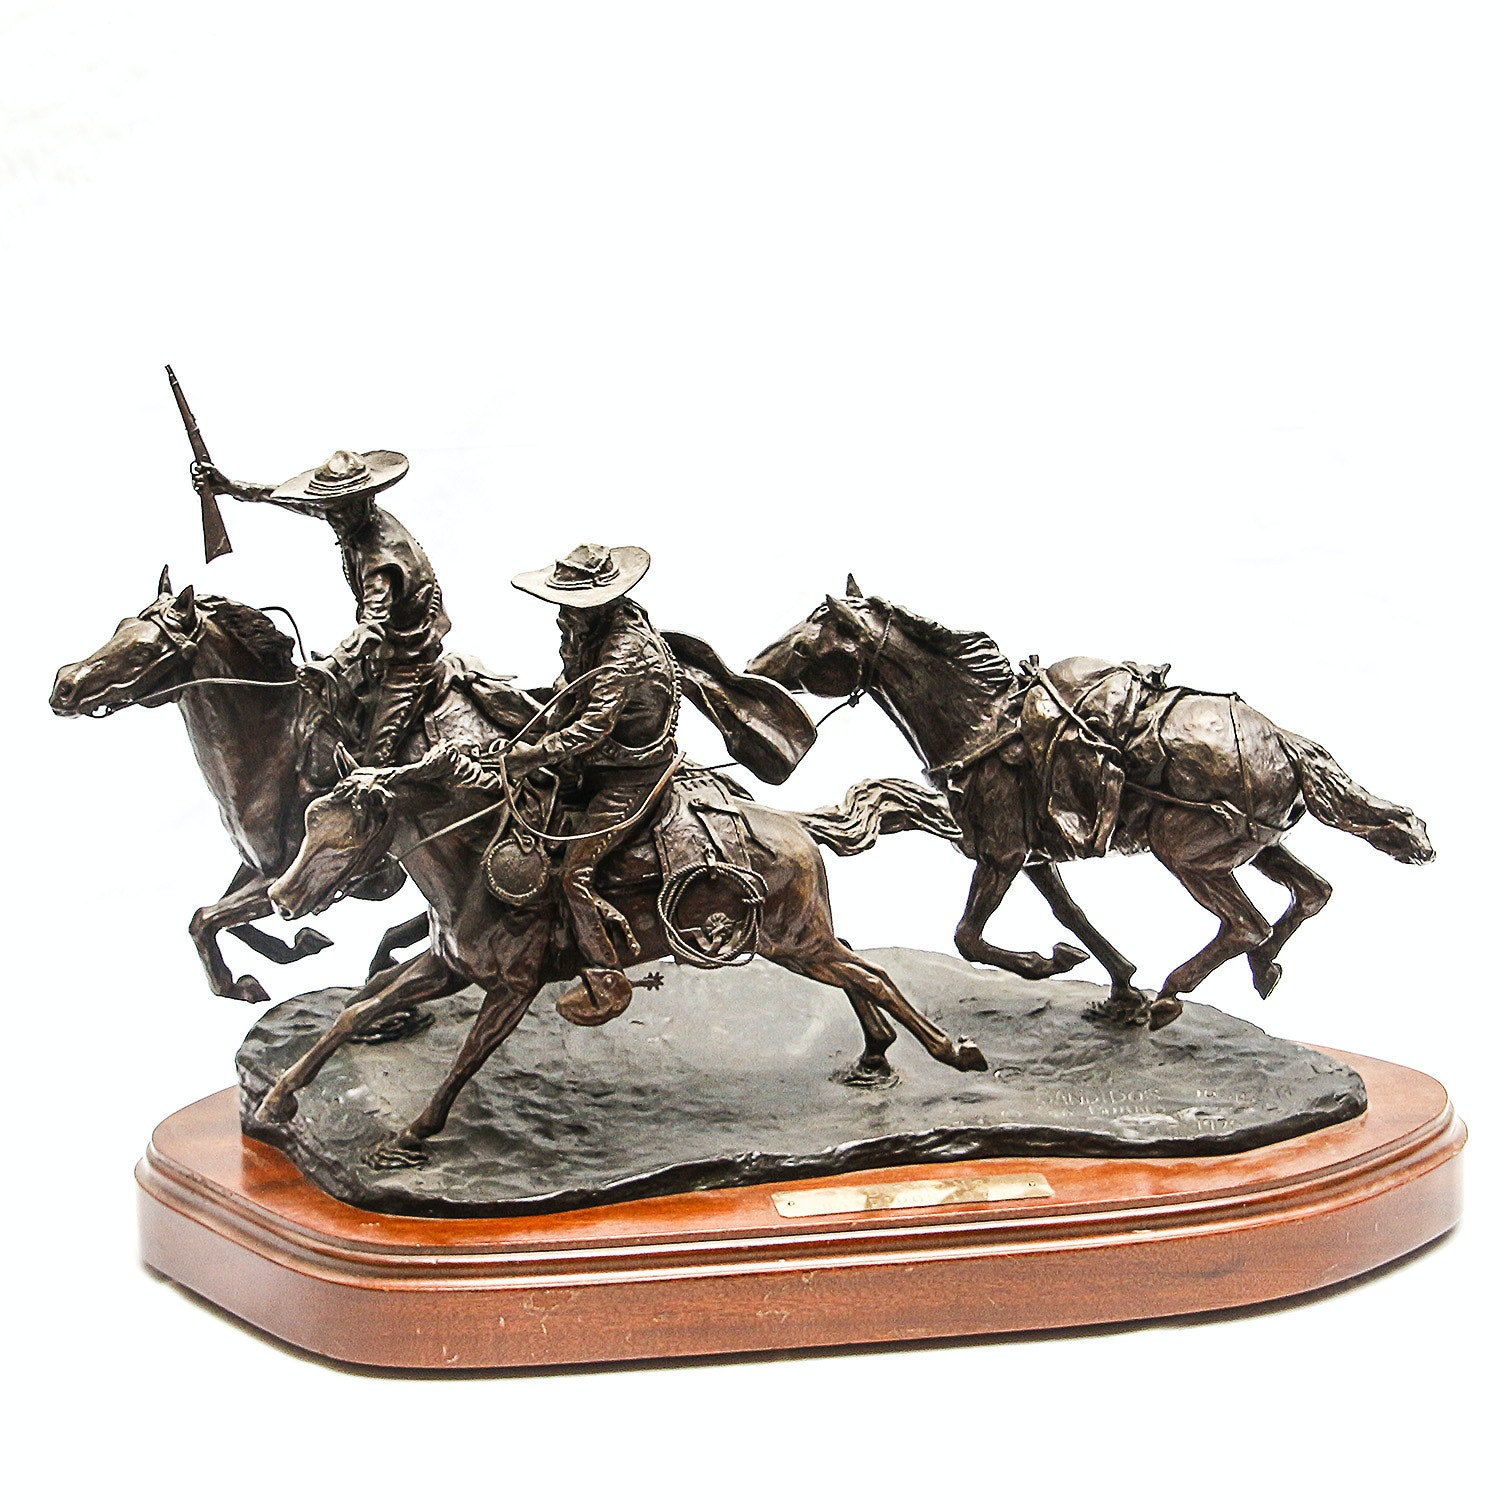 "Sid Burns 1975 Bronze Sculpture ""Banditos"""